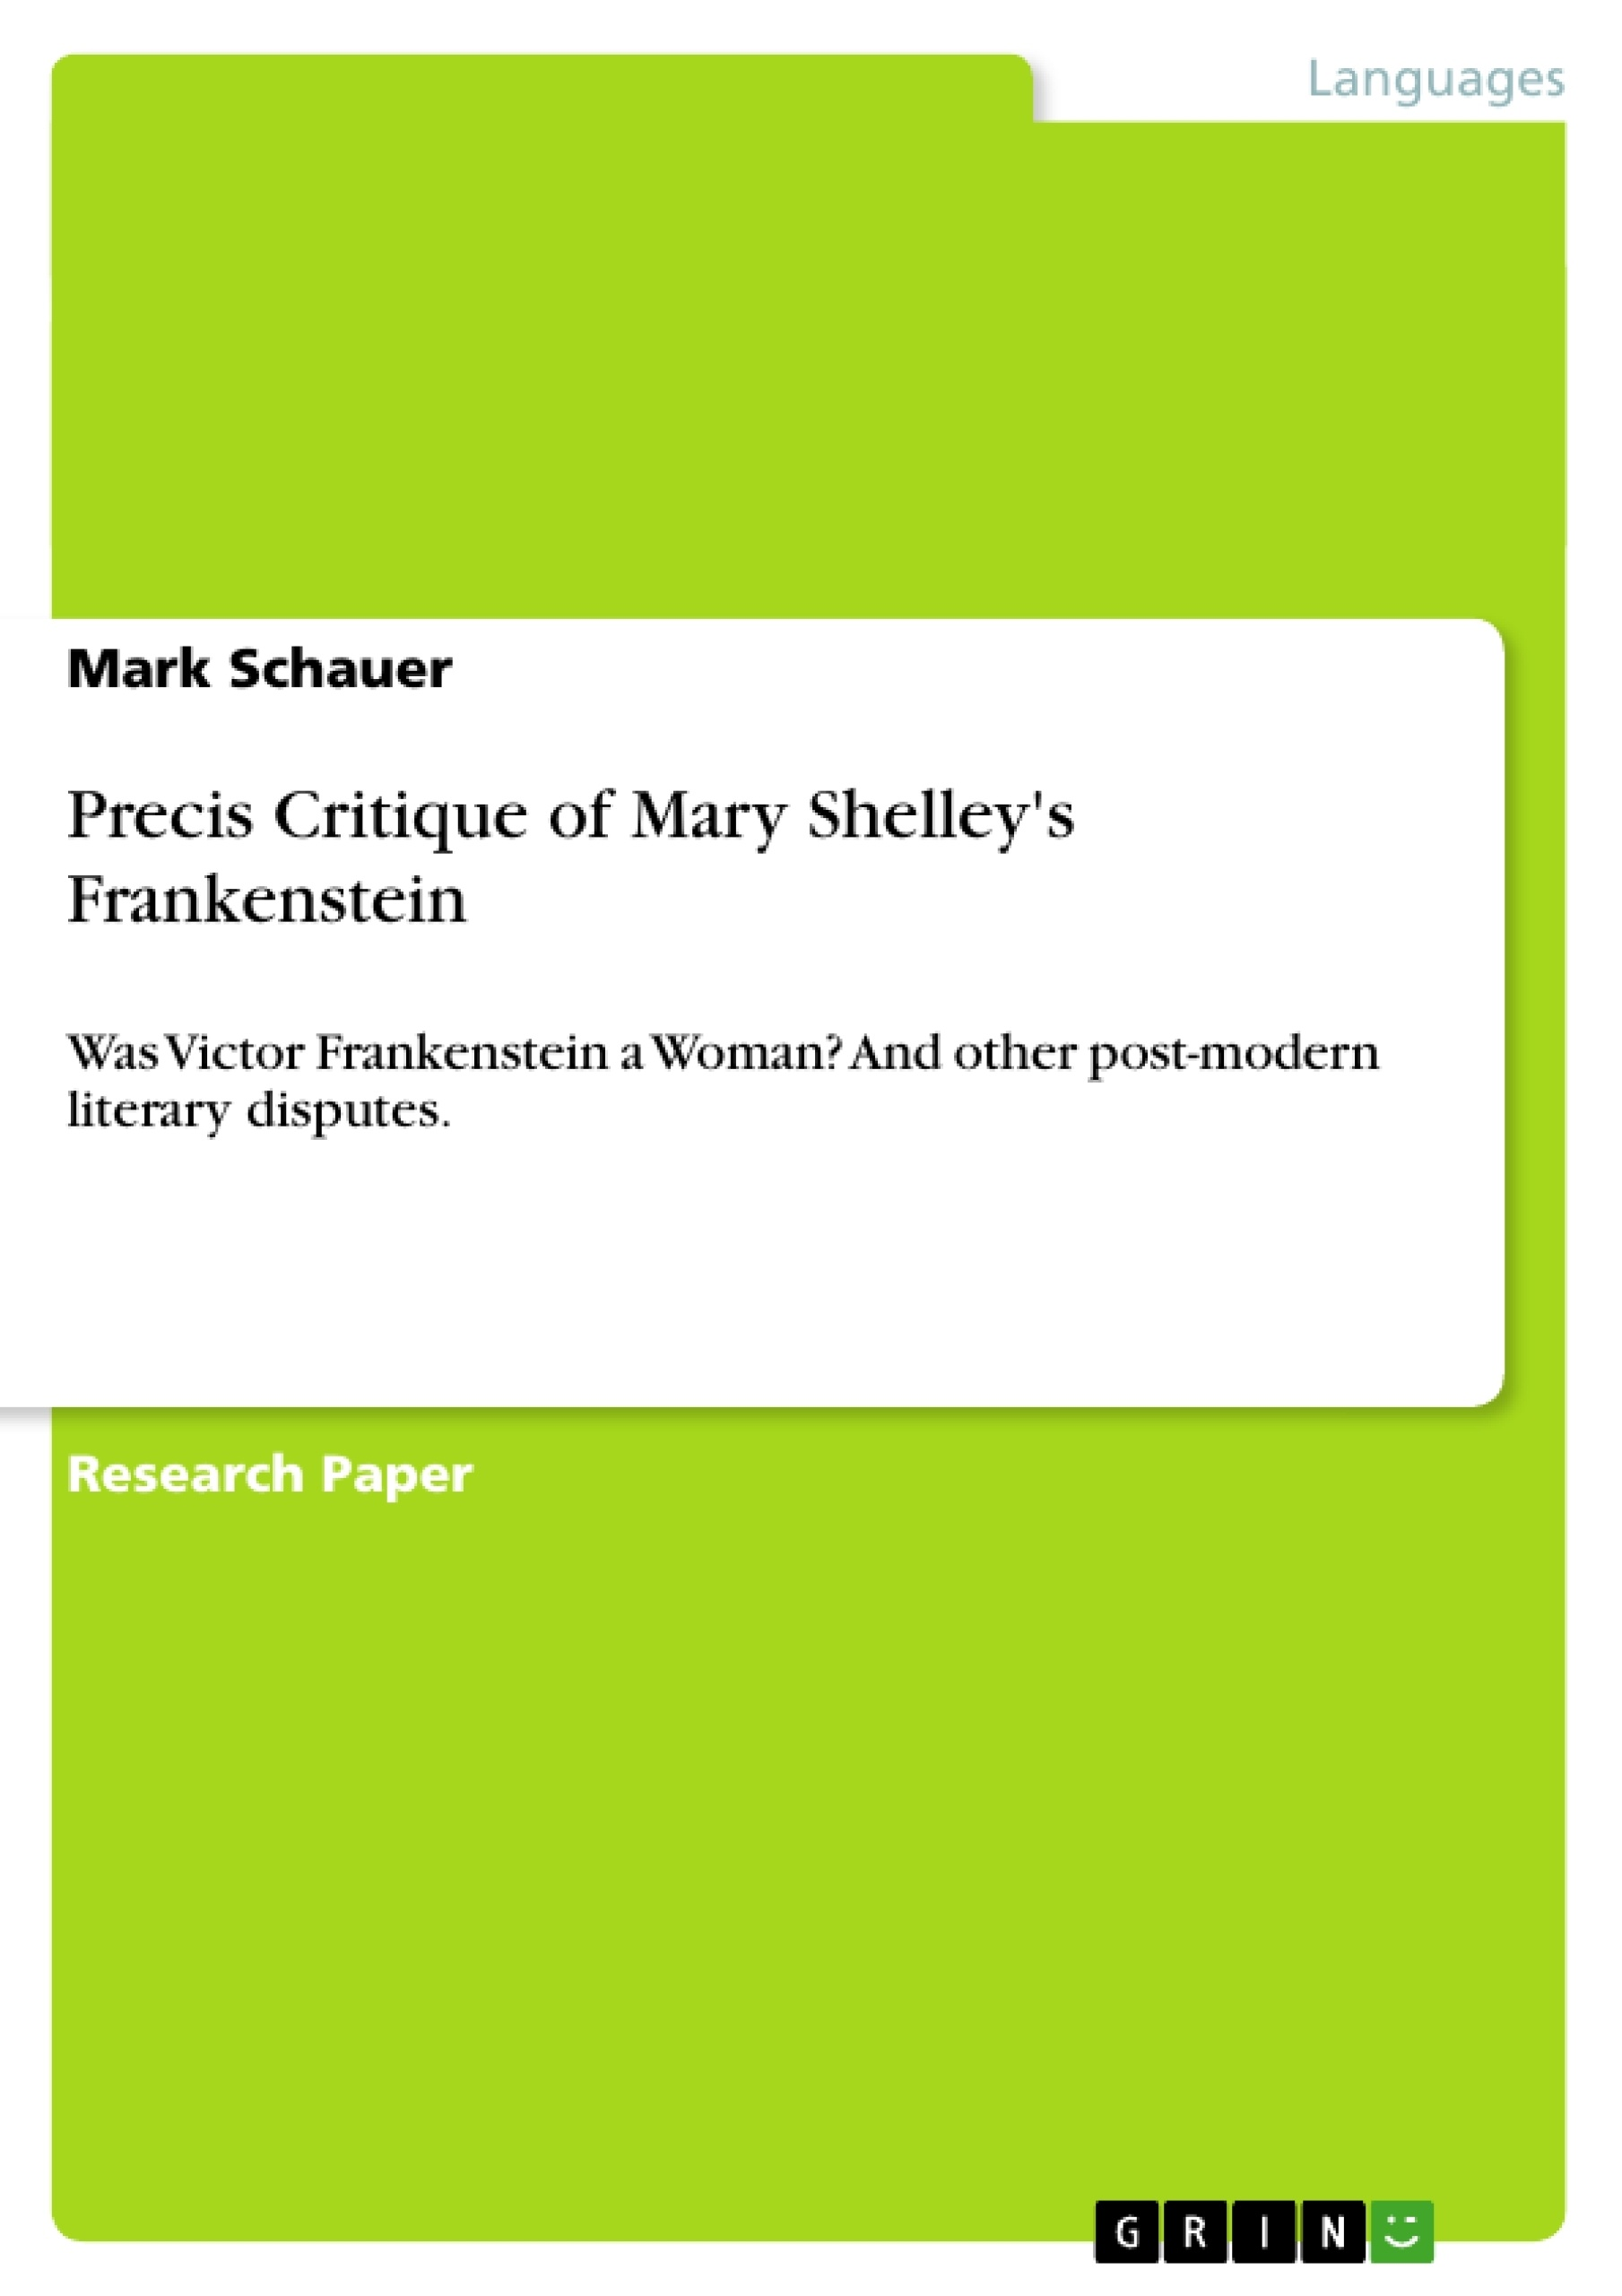 precis critique of mary shelley s frankenstein publish your upload your own papers earn money and win an iphone 7